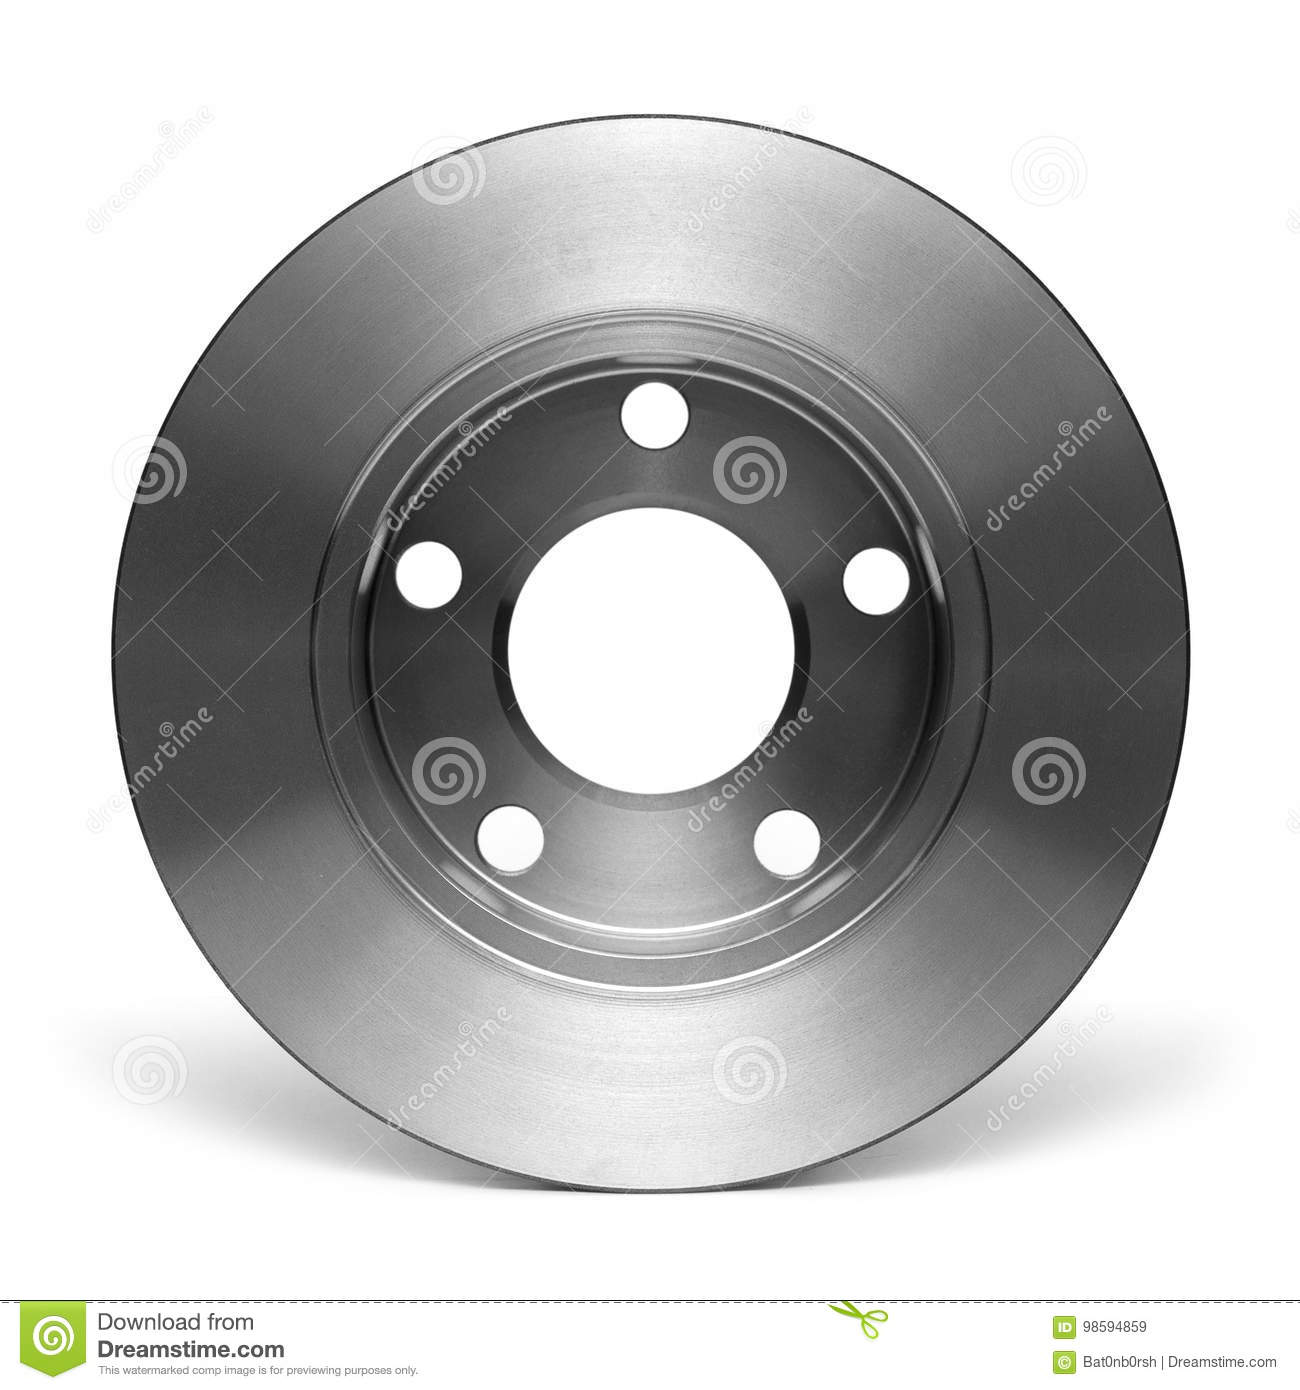 Car Brake Repair Service: Car Brake Disc Service Icon Stock Images